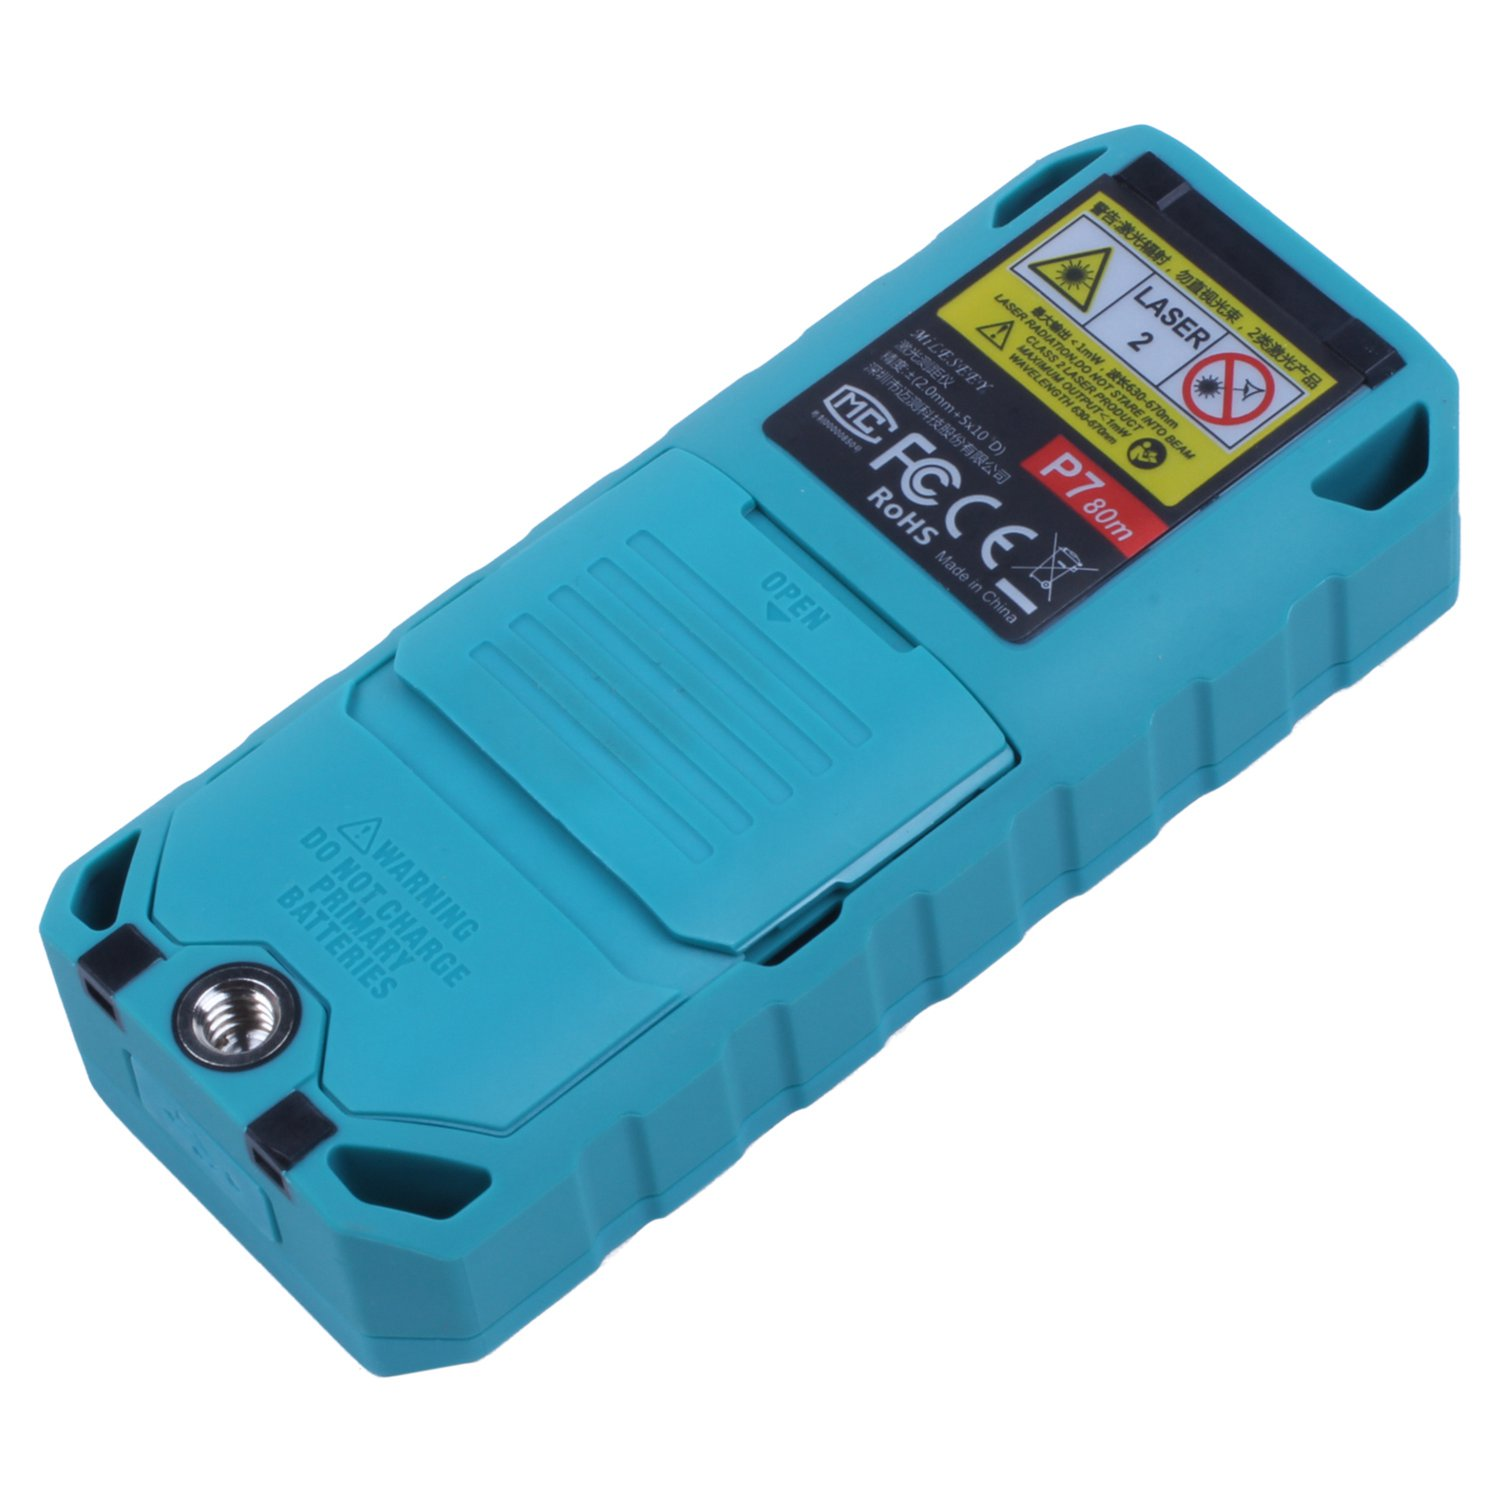 Mileseey P7 Bluetooth Laser Rangefinder with Rotary Touch Screen Rechargerable Laser Meter lixf mileseey p7 bluetooth laser rangefinder with rotary touch screen rechargerable laser meter 200m